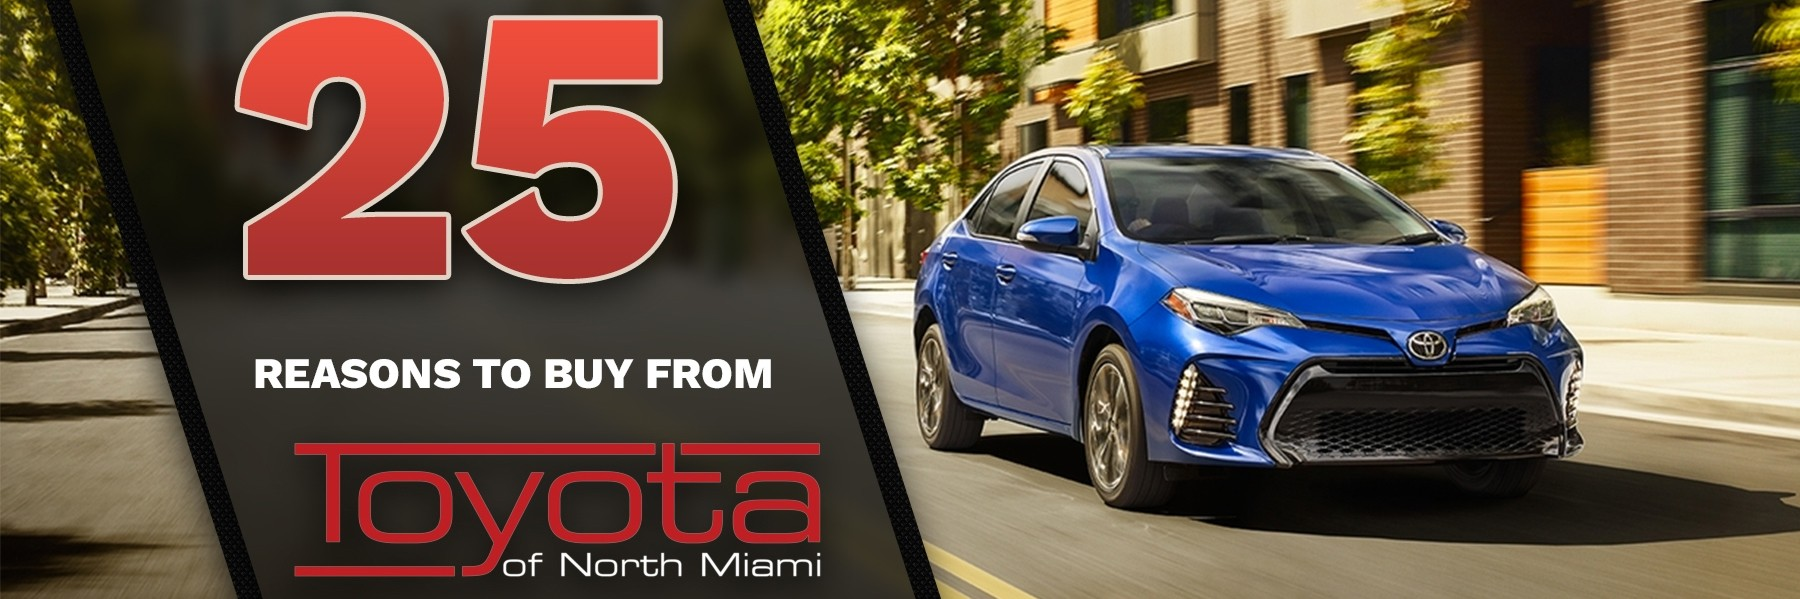 Toyota North Miami